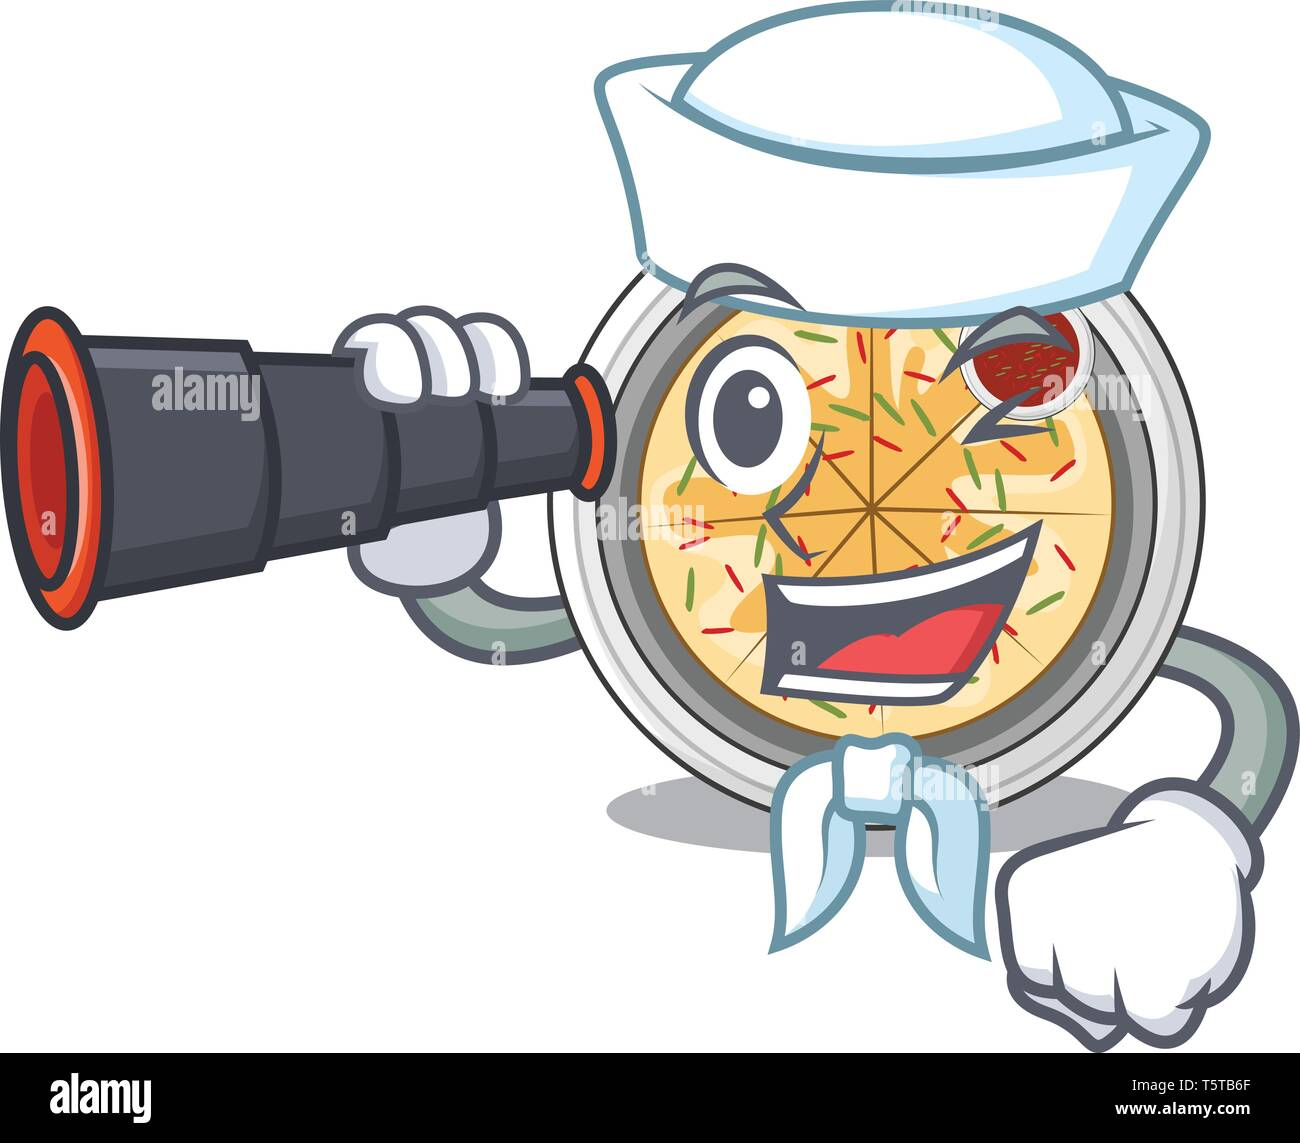 Sailor with binocular buchimgae isolated with in the mascot - Stock Vector